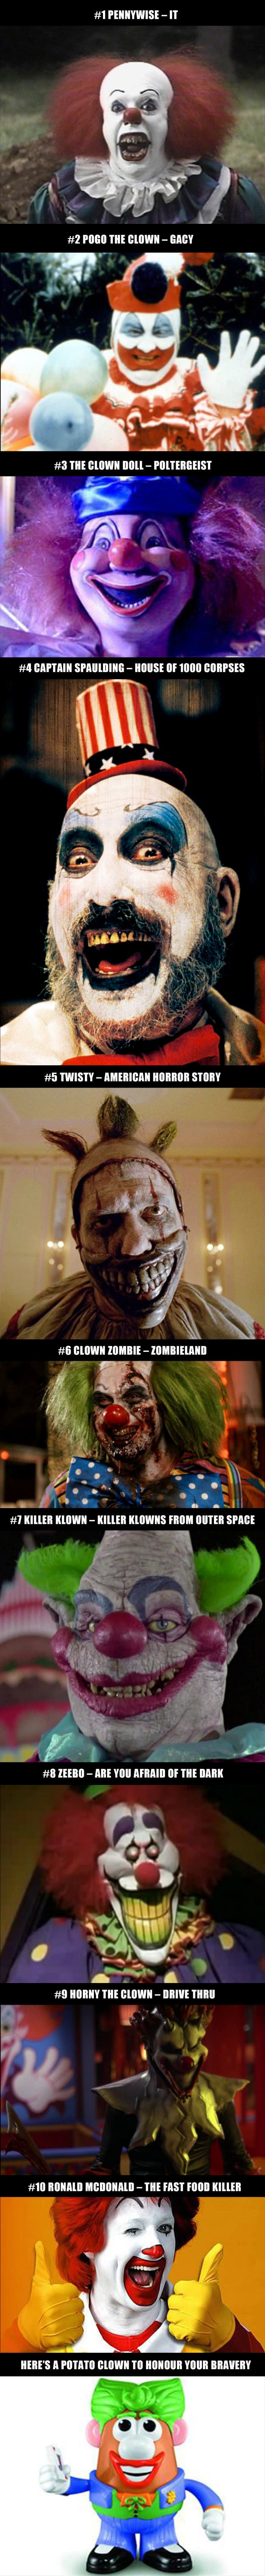 The 10 Scariest Clowns That Will Definitely Give You a Nightmare